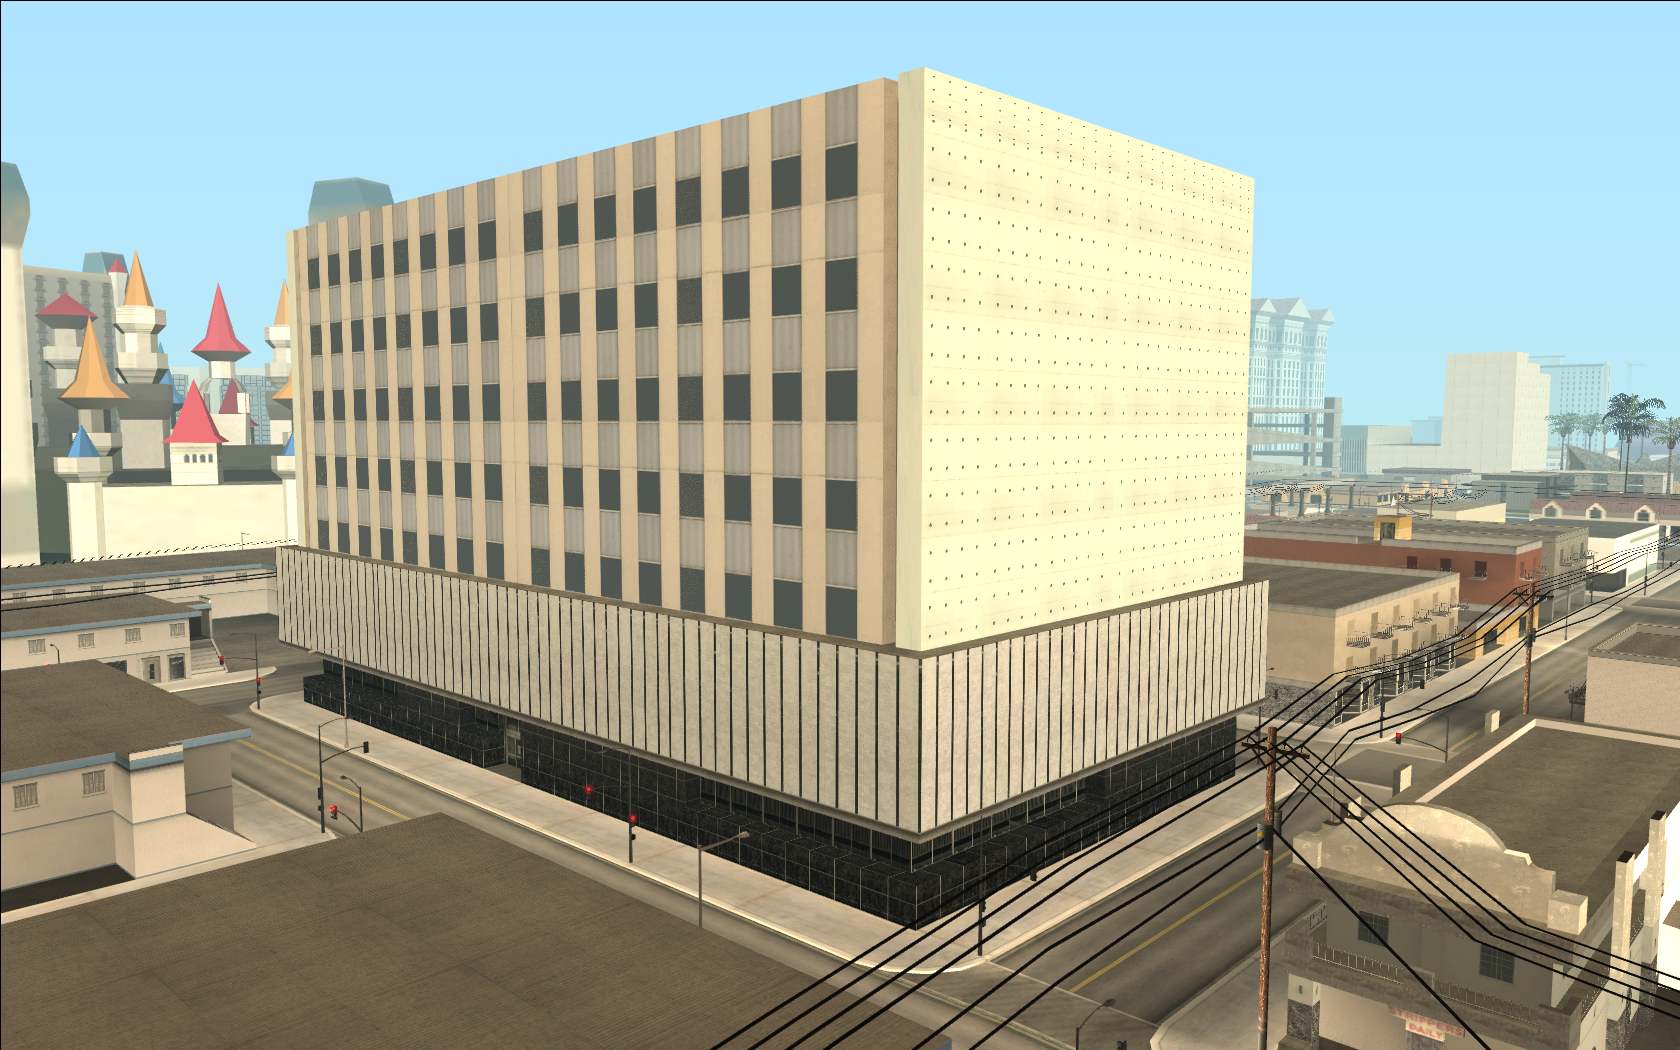 Come-A-Lot Courthouse